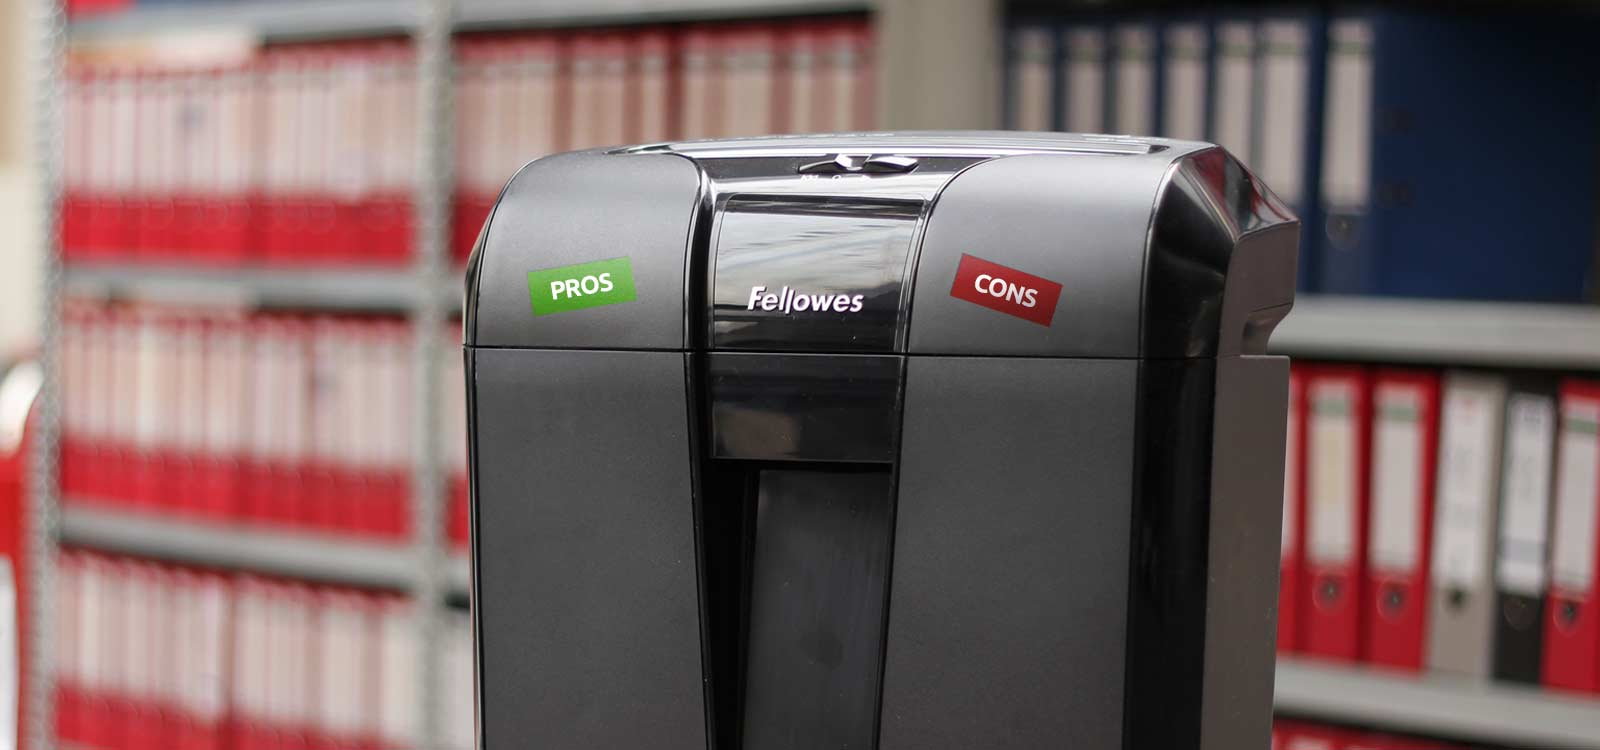 Paper-Shredder-Pros-and-Cons-Header